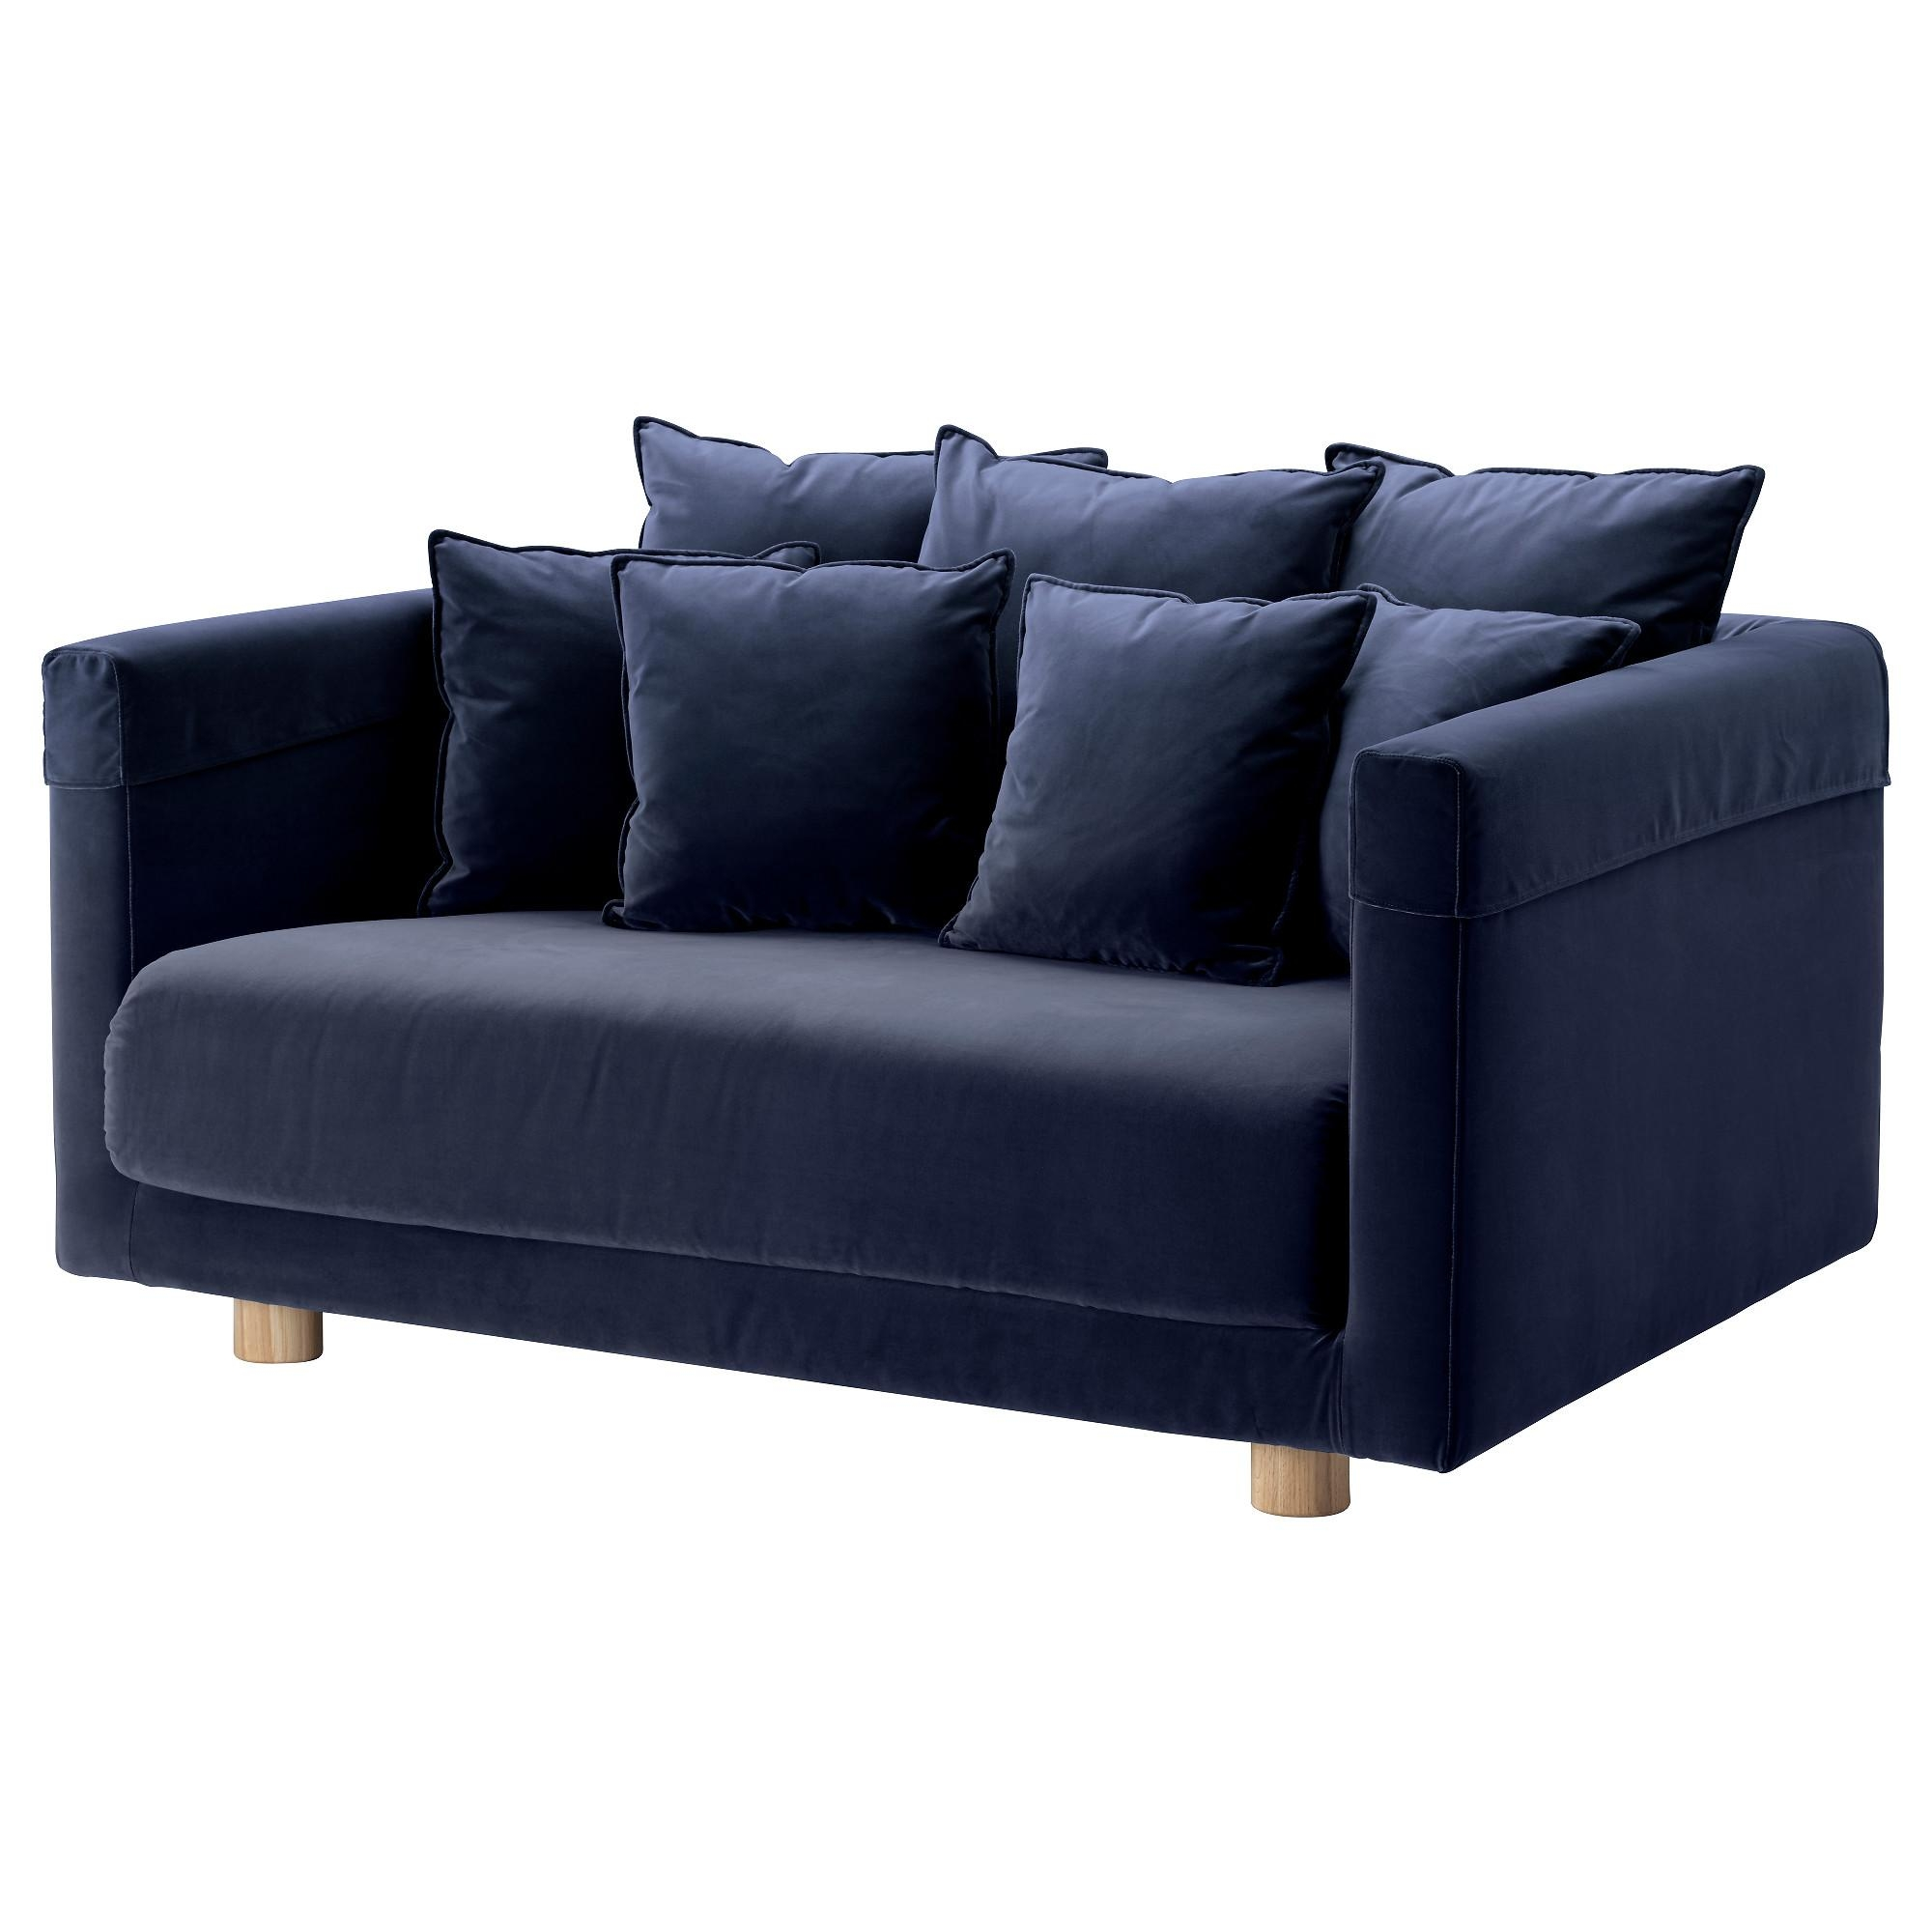 Fabric Sofas | Ikea Ireland – Dublin Intended For Fabric Sofas (View 12 of 20)